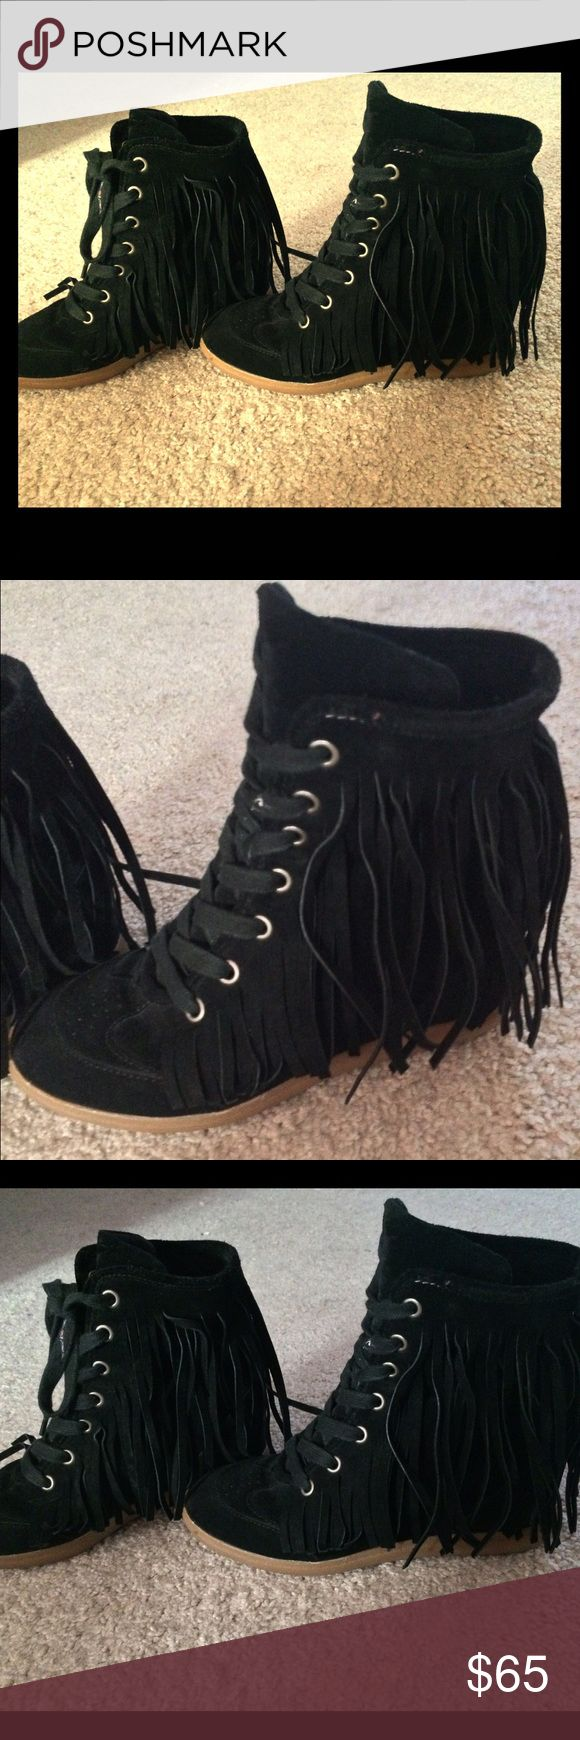 Black Aldo Wedged Sneakers Black Wedge Sneaker with fringes on sides. Very trendy and cute for a night out or can be dressed down with jeans! finally a pair of comfy heels. Also have never been worn! ALDO Shoes Sneakers